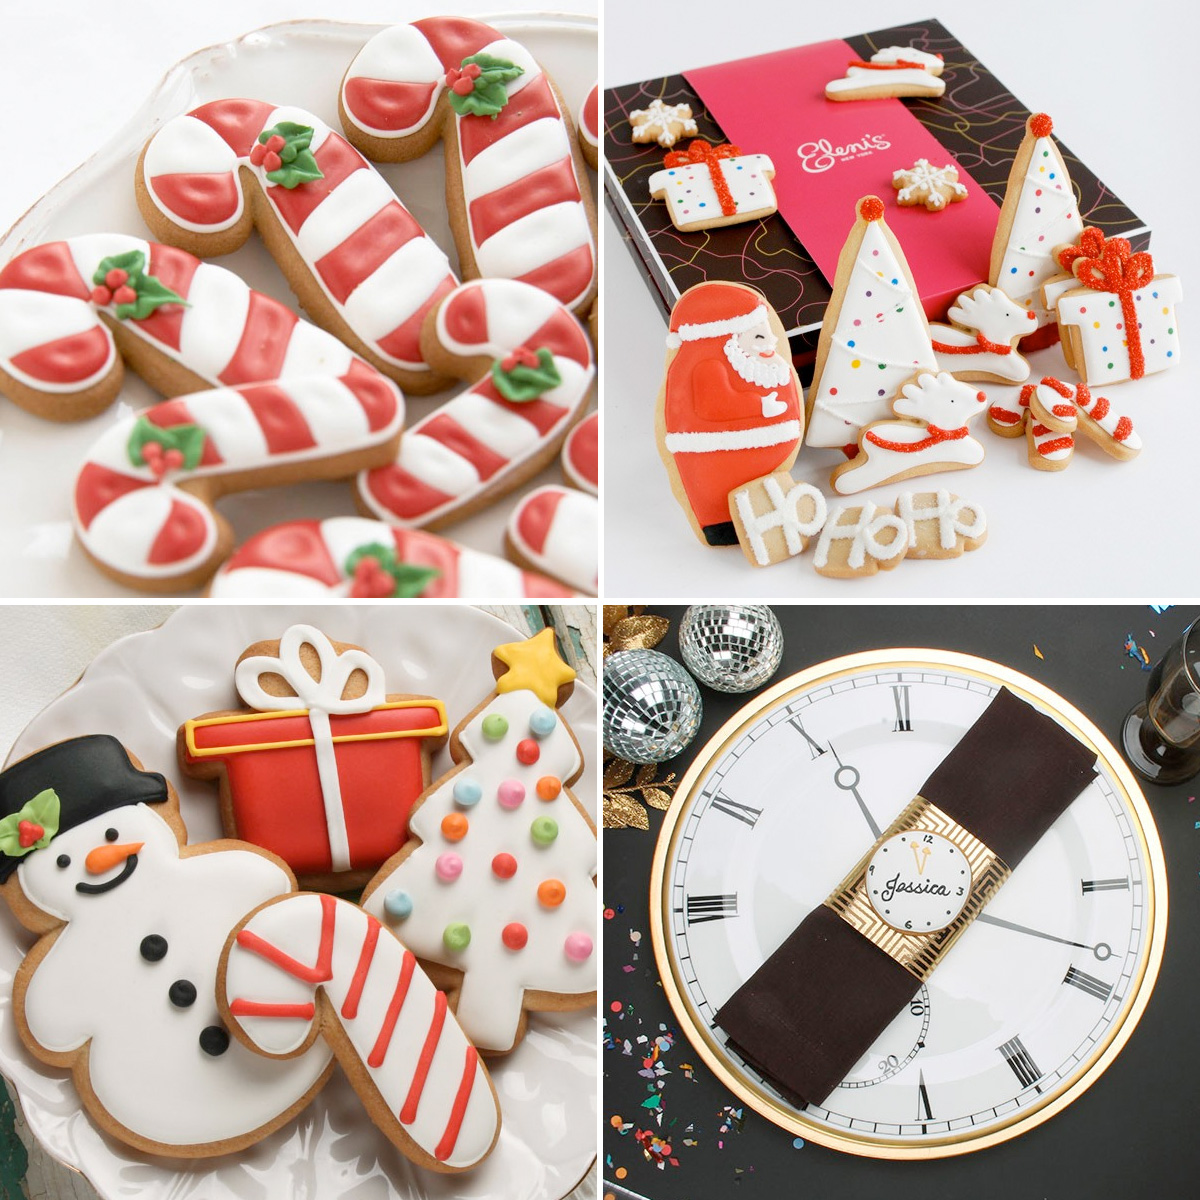 Holiday Cookies for Weddings and Parties : sweet treats for party guests